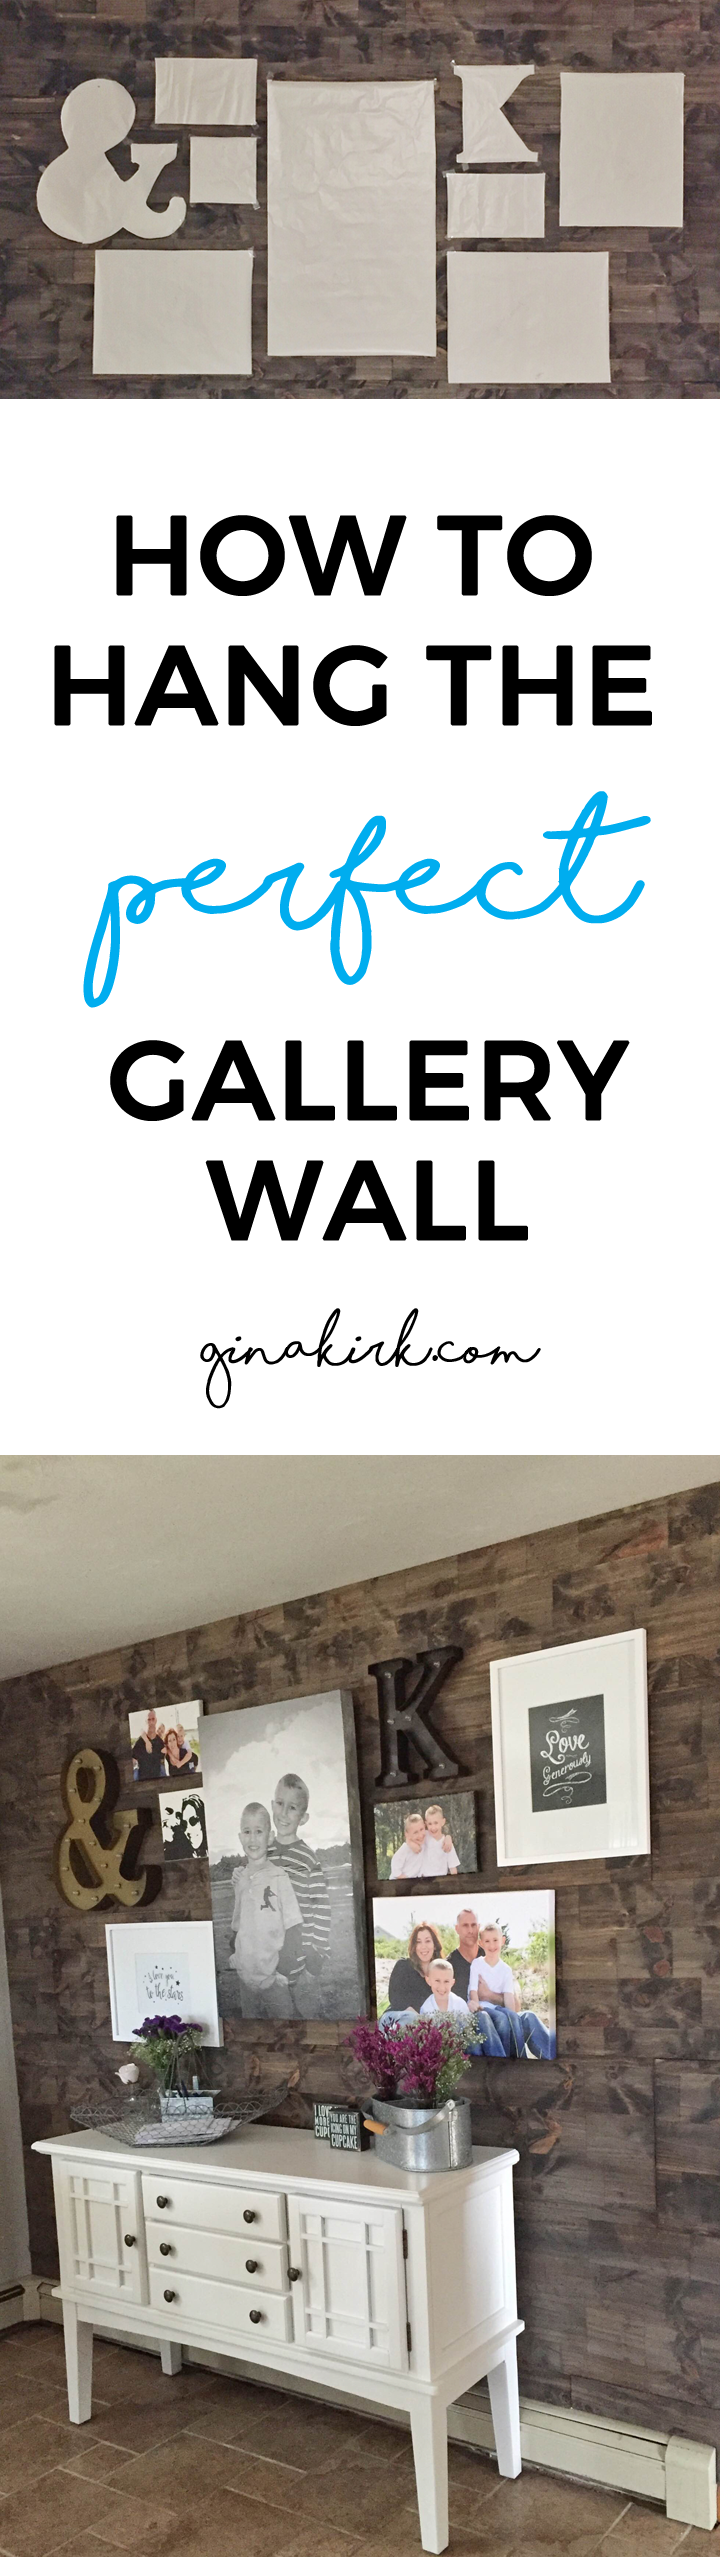 Fixer upper kitchen gallery - How To Hang A Gallery Wall